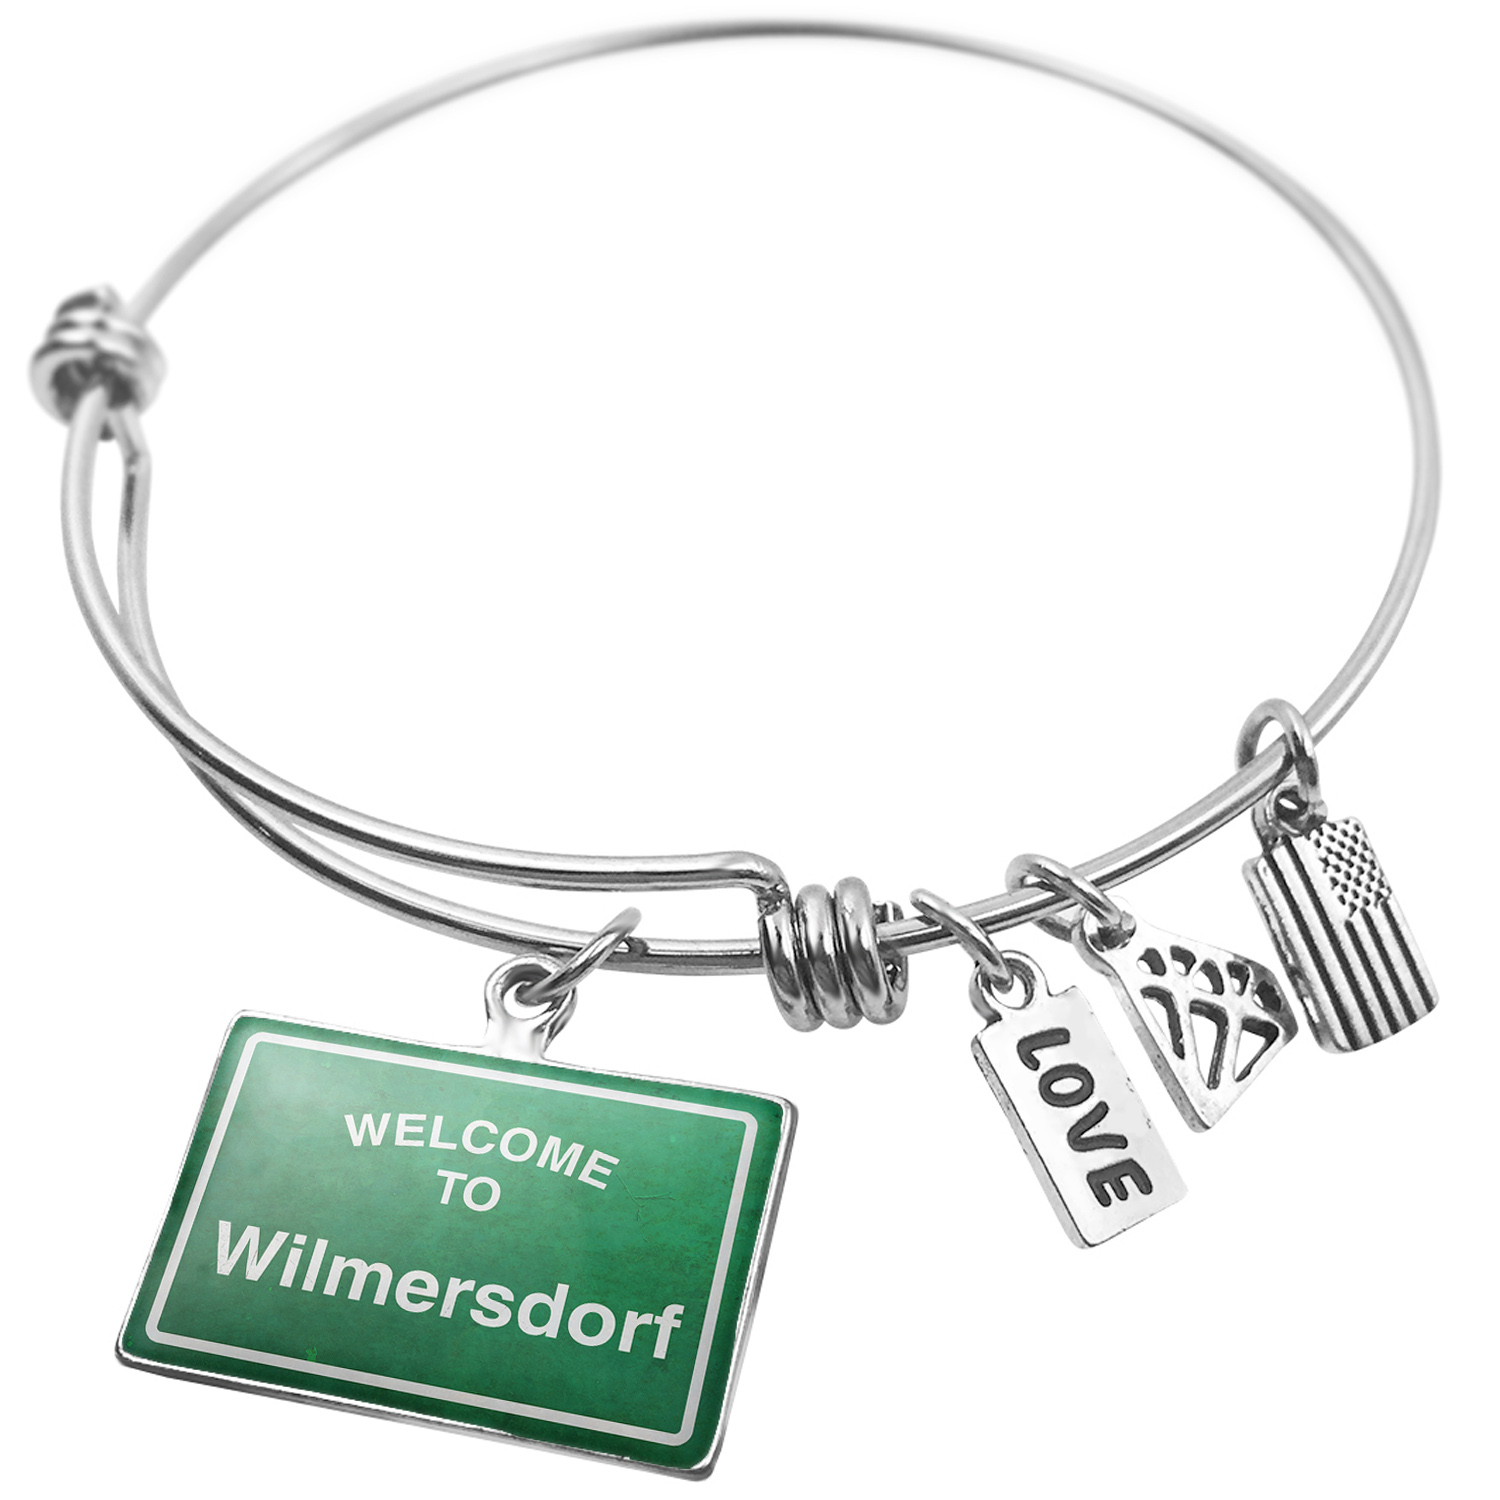 Expandable Wire Bangle Bracelet Green Road Sign Welcome To Wilmersdorf - NEONBLOND